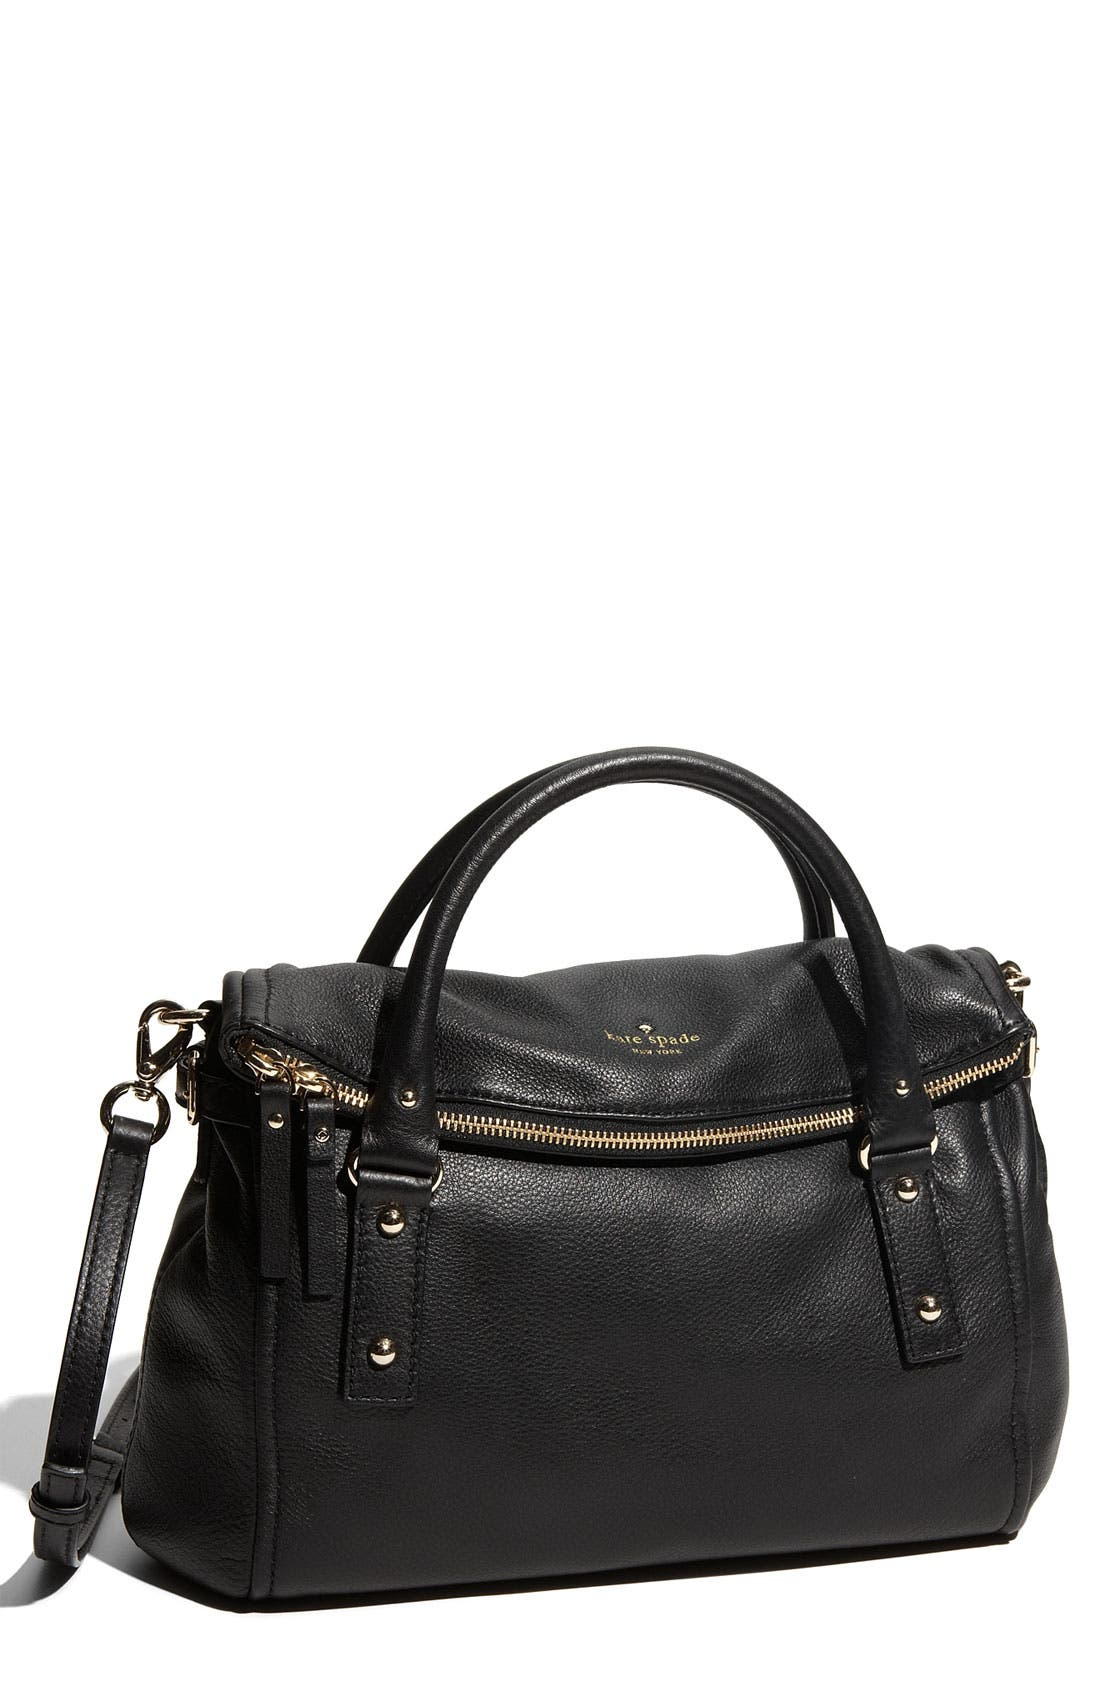 KATE SPADE NEW YORK 'cobble hill - leslie small' leather satchel, Main, color, 001